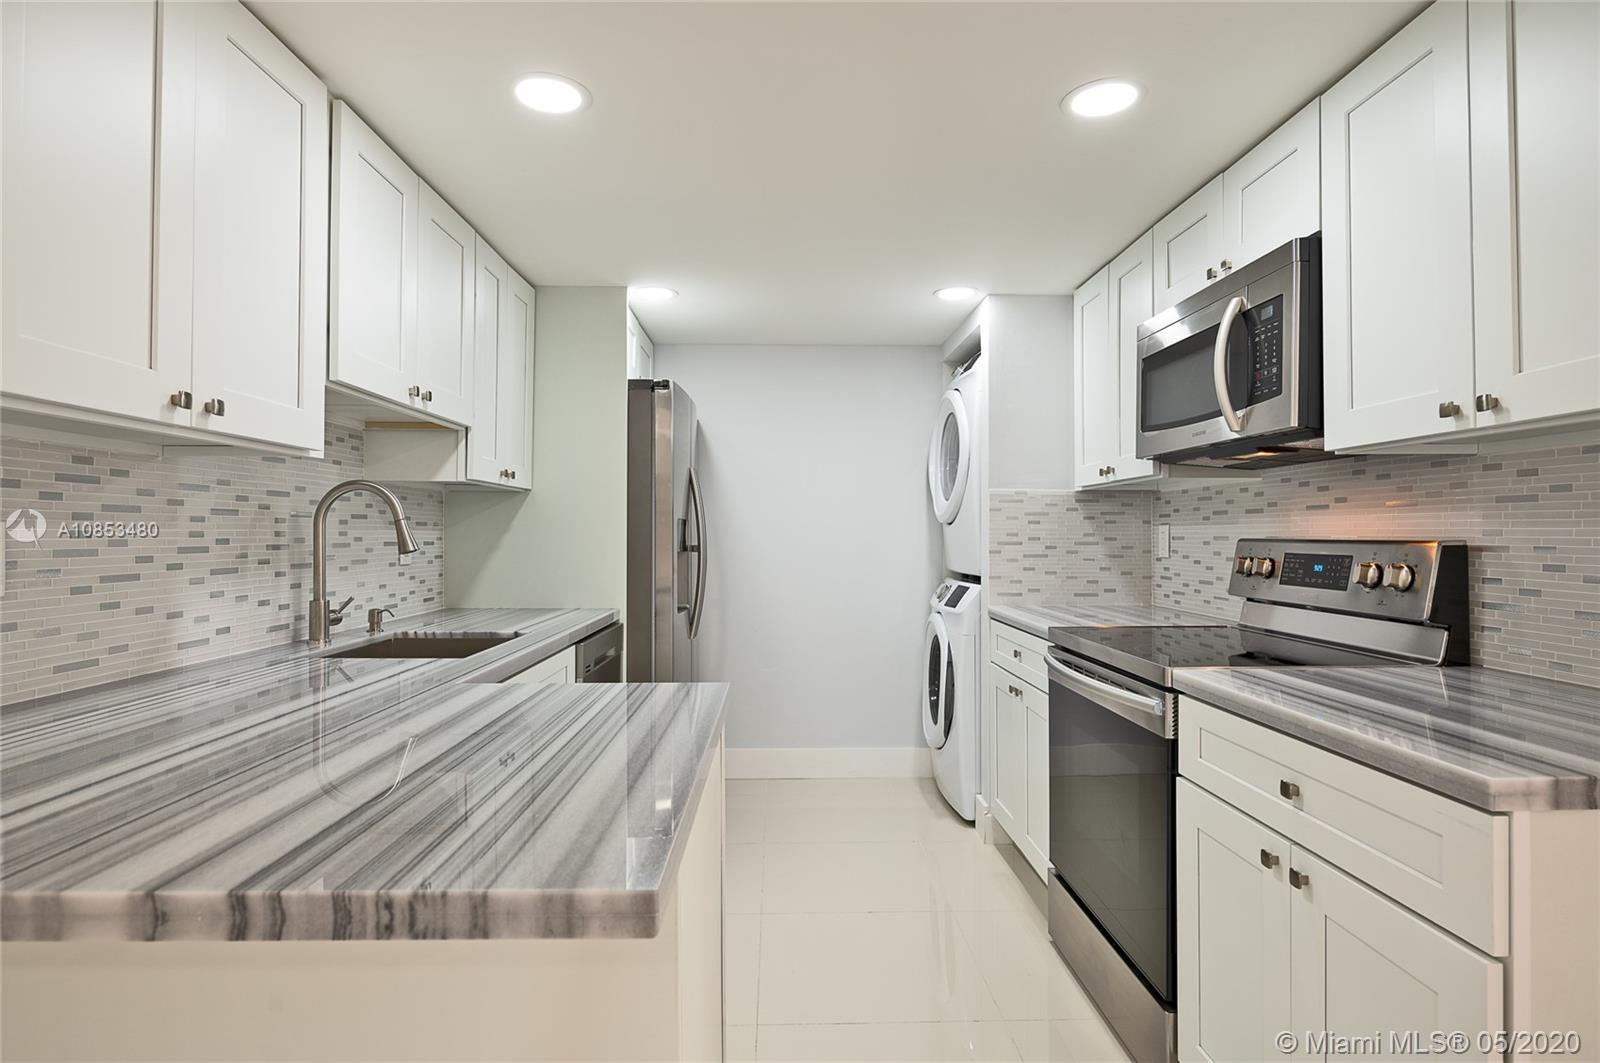 Beautifully remodeled unit in Snapper Village! Features 3 bedrooms, 2 baths, tile flooring, living-dining room, patio for entertaining and front courtyard. Maintenance fee includes: Water, cable, internet, insurance, guard/gate, common area maintenance, pool, club house, window and door repairs, fence.